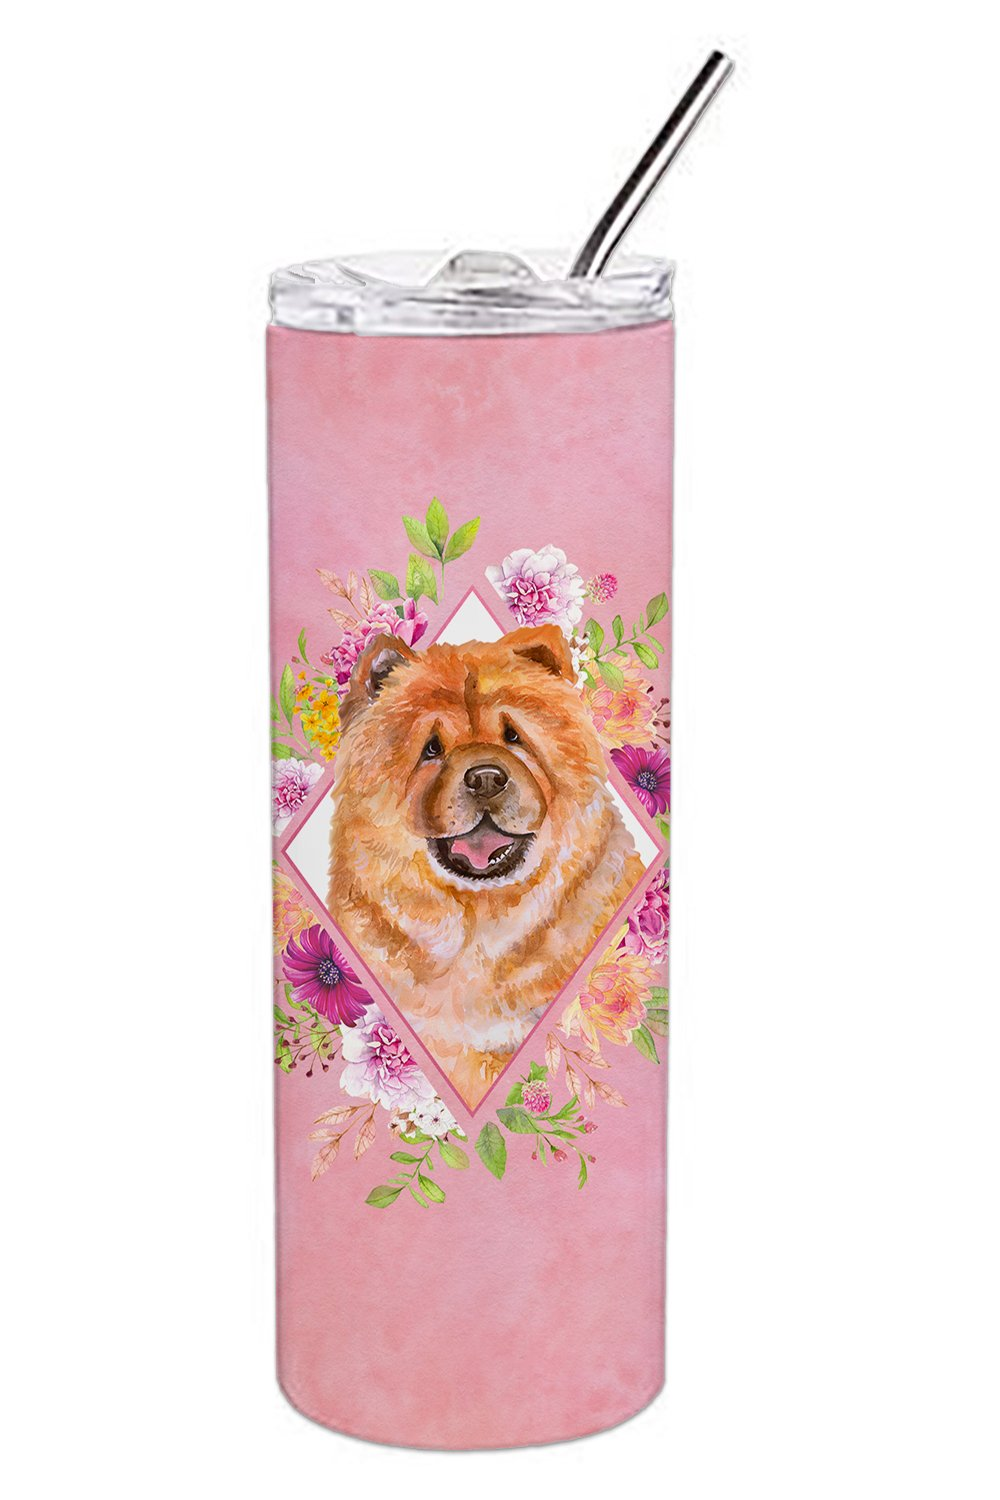 Chow Chow #1 Pink Flowers Double Walled Stainless Steel 20 oz Skinny Tumbler CK4131TBL20 by Caroline's Treasures